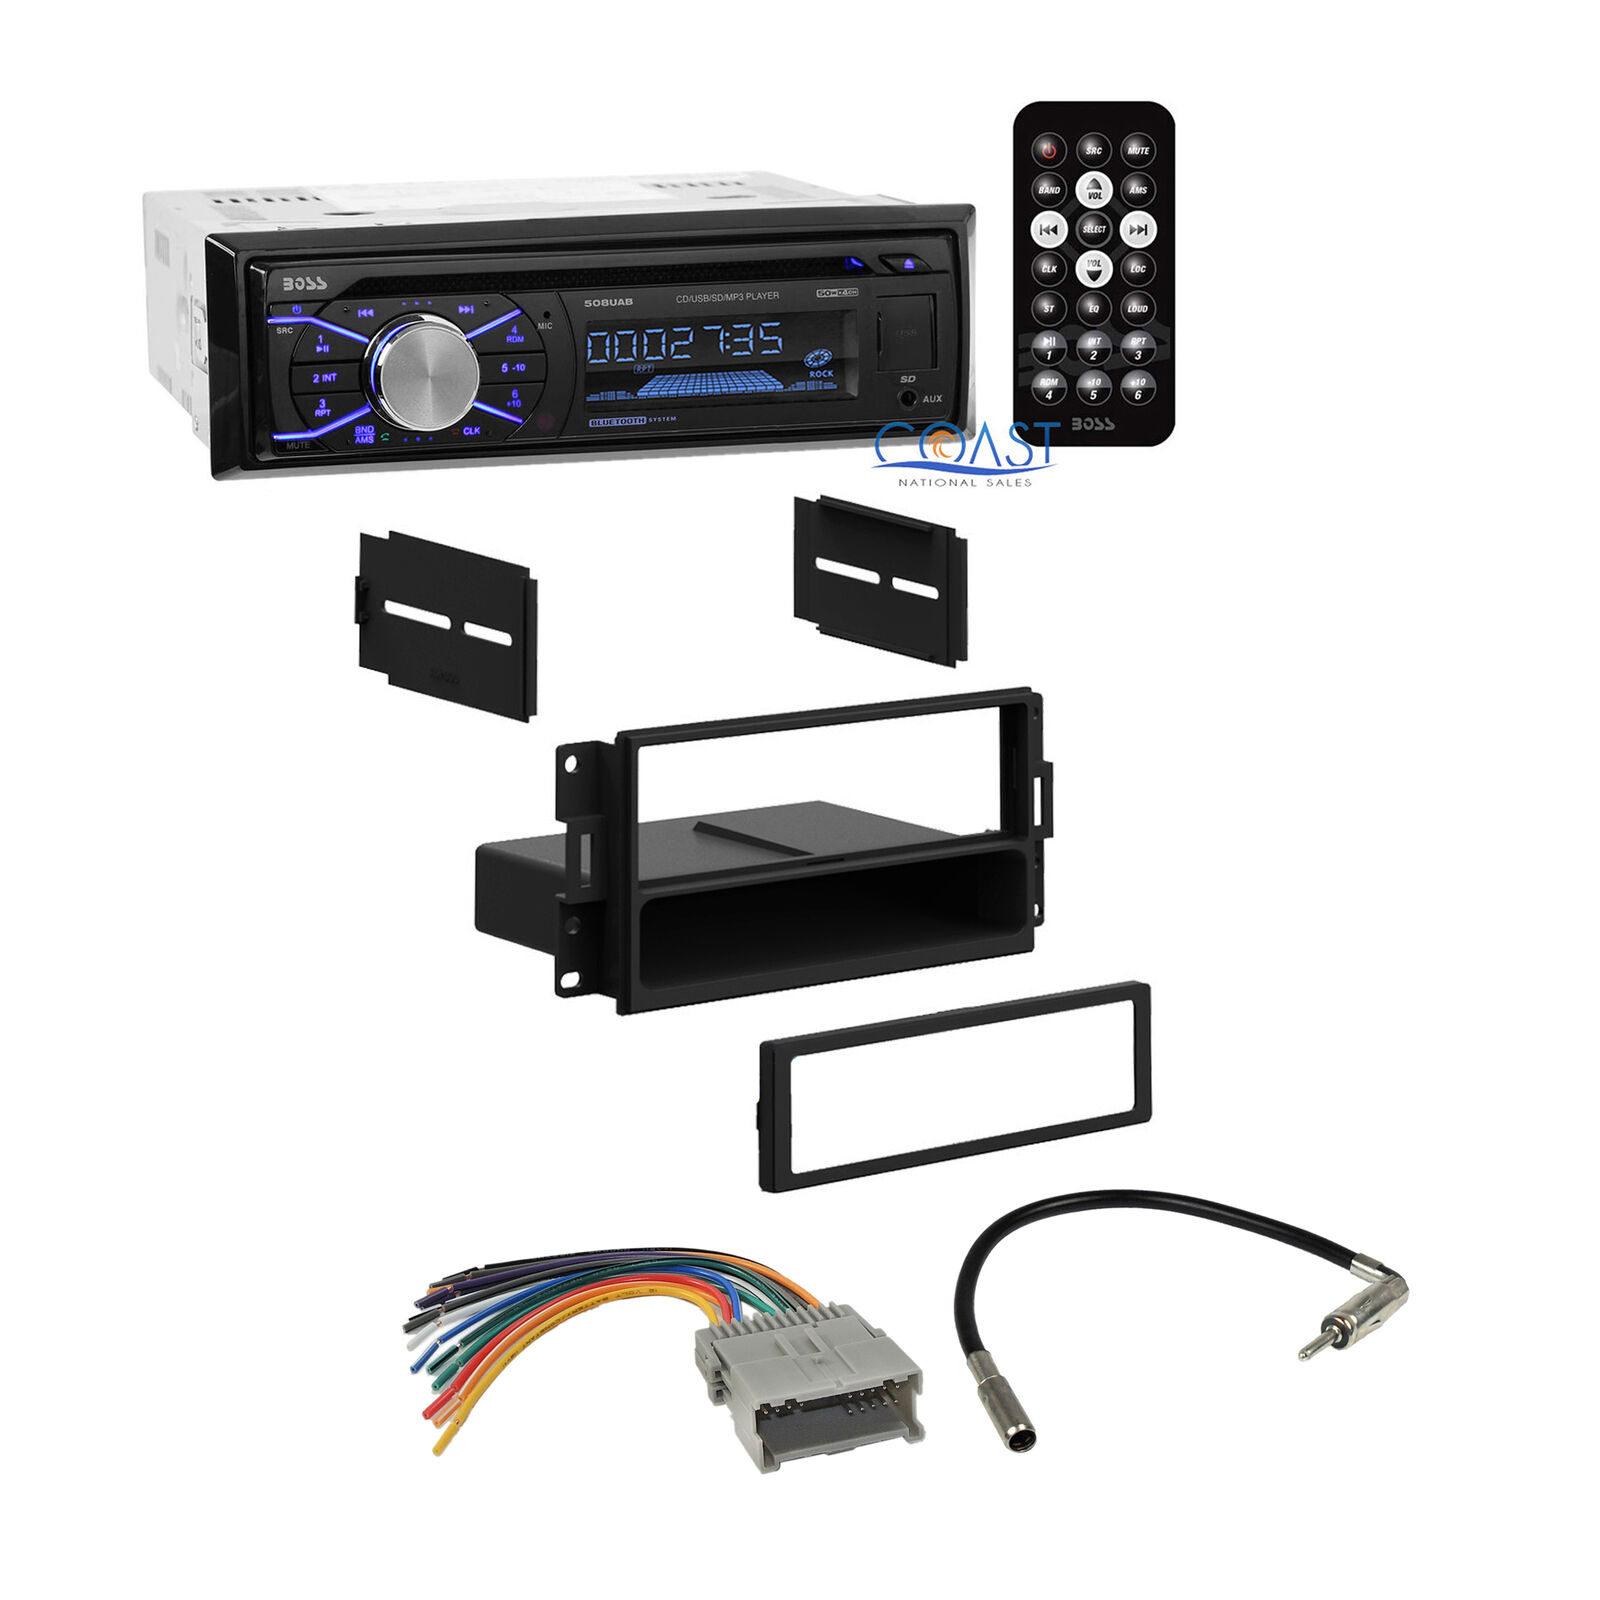 2002 2003 2004 2005 Dodge Ram 1500 2500 3500 Dash Kit For Stereo System Radio Install Xscorpion